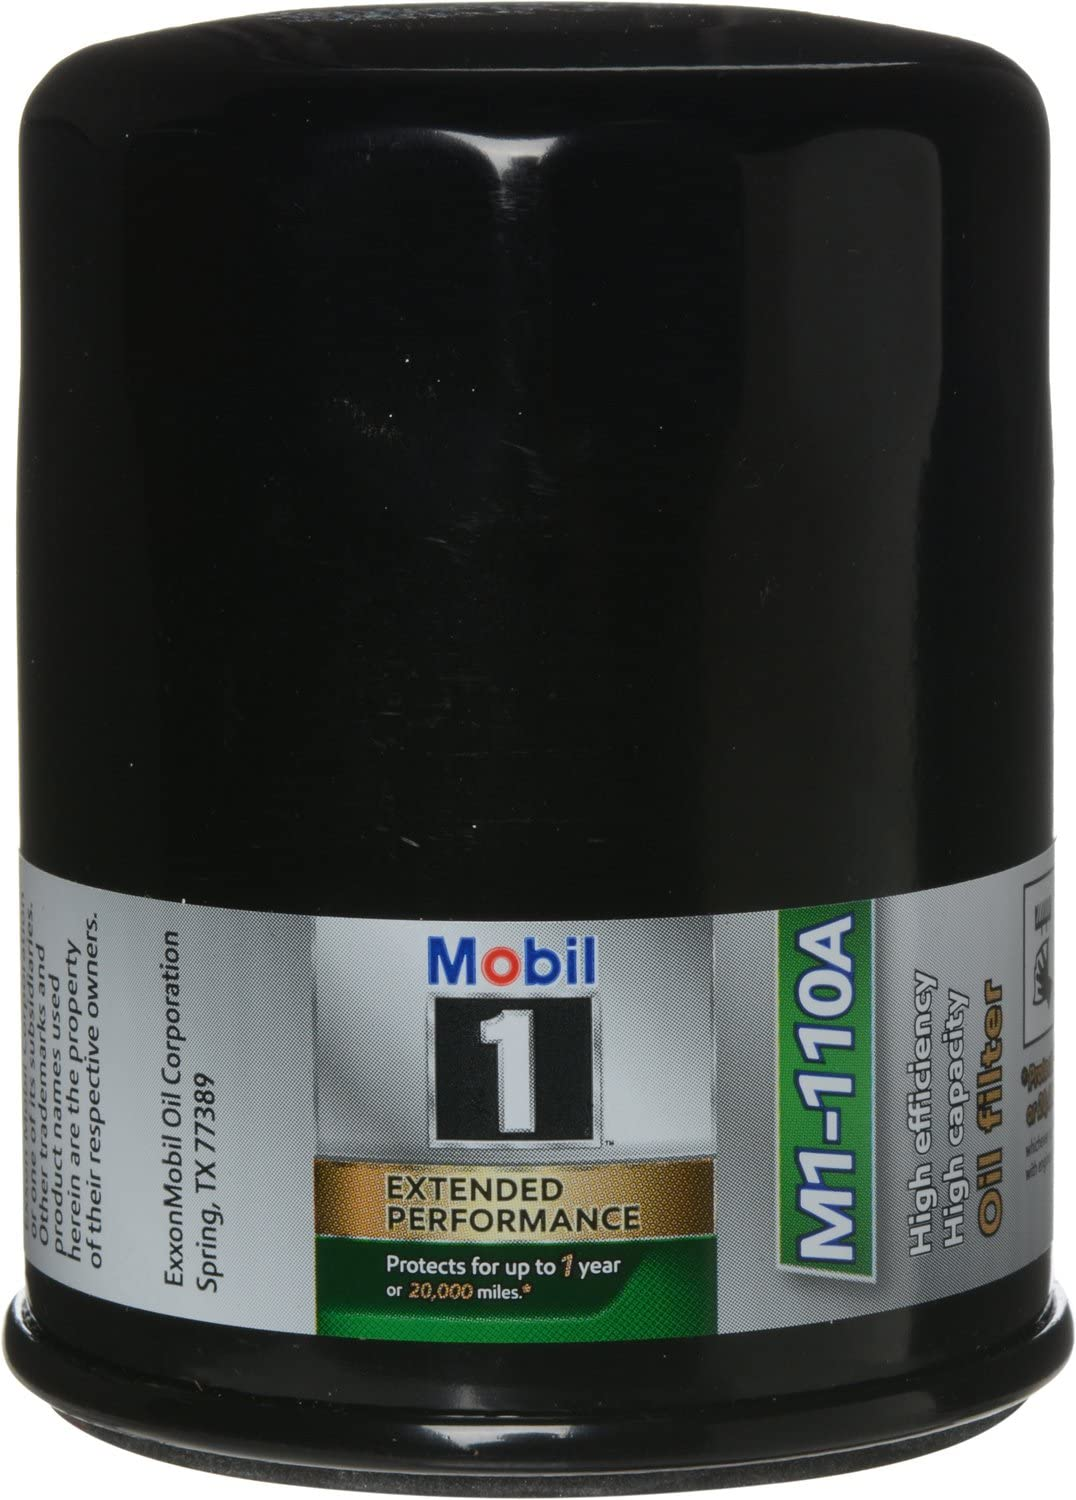 Mobil 1 M1-110A Extended Performance Oil Filter, Pack of 2